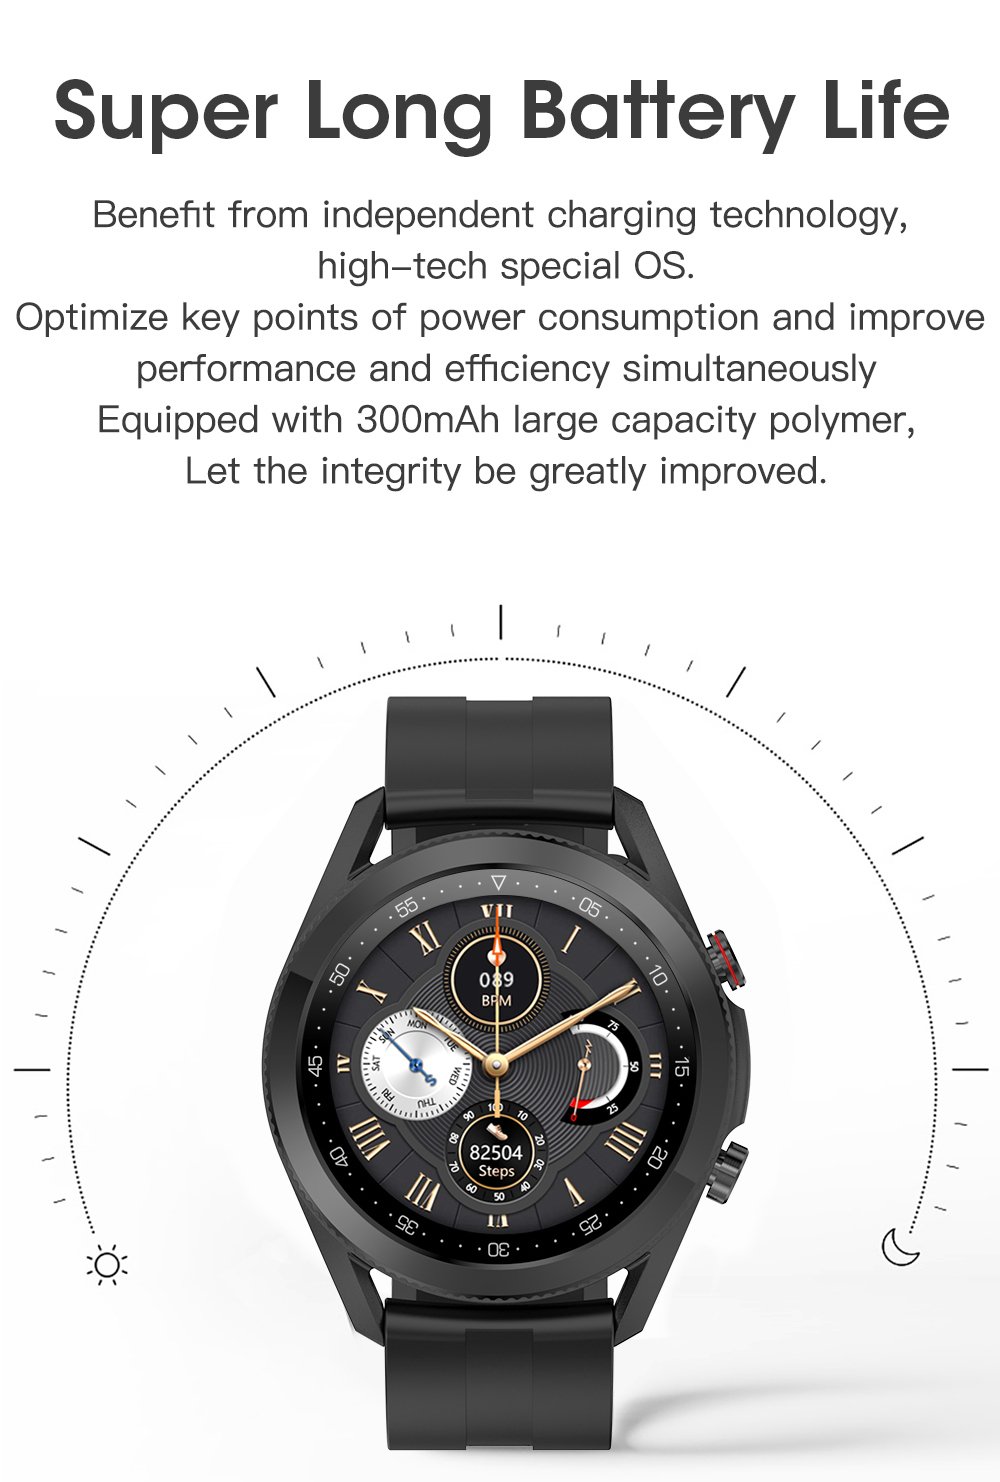 H6441b129adff4227a6fde5ccee598bb8s Timewolf Smart Watch Men 2021 IP68 Waterproof Android Full Touch Sports Smartwatch Bluetooth Call For Samsung Huawei Android IOS